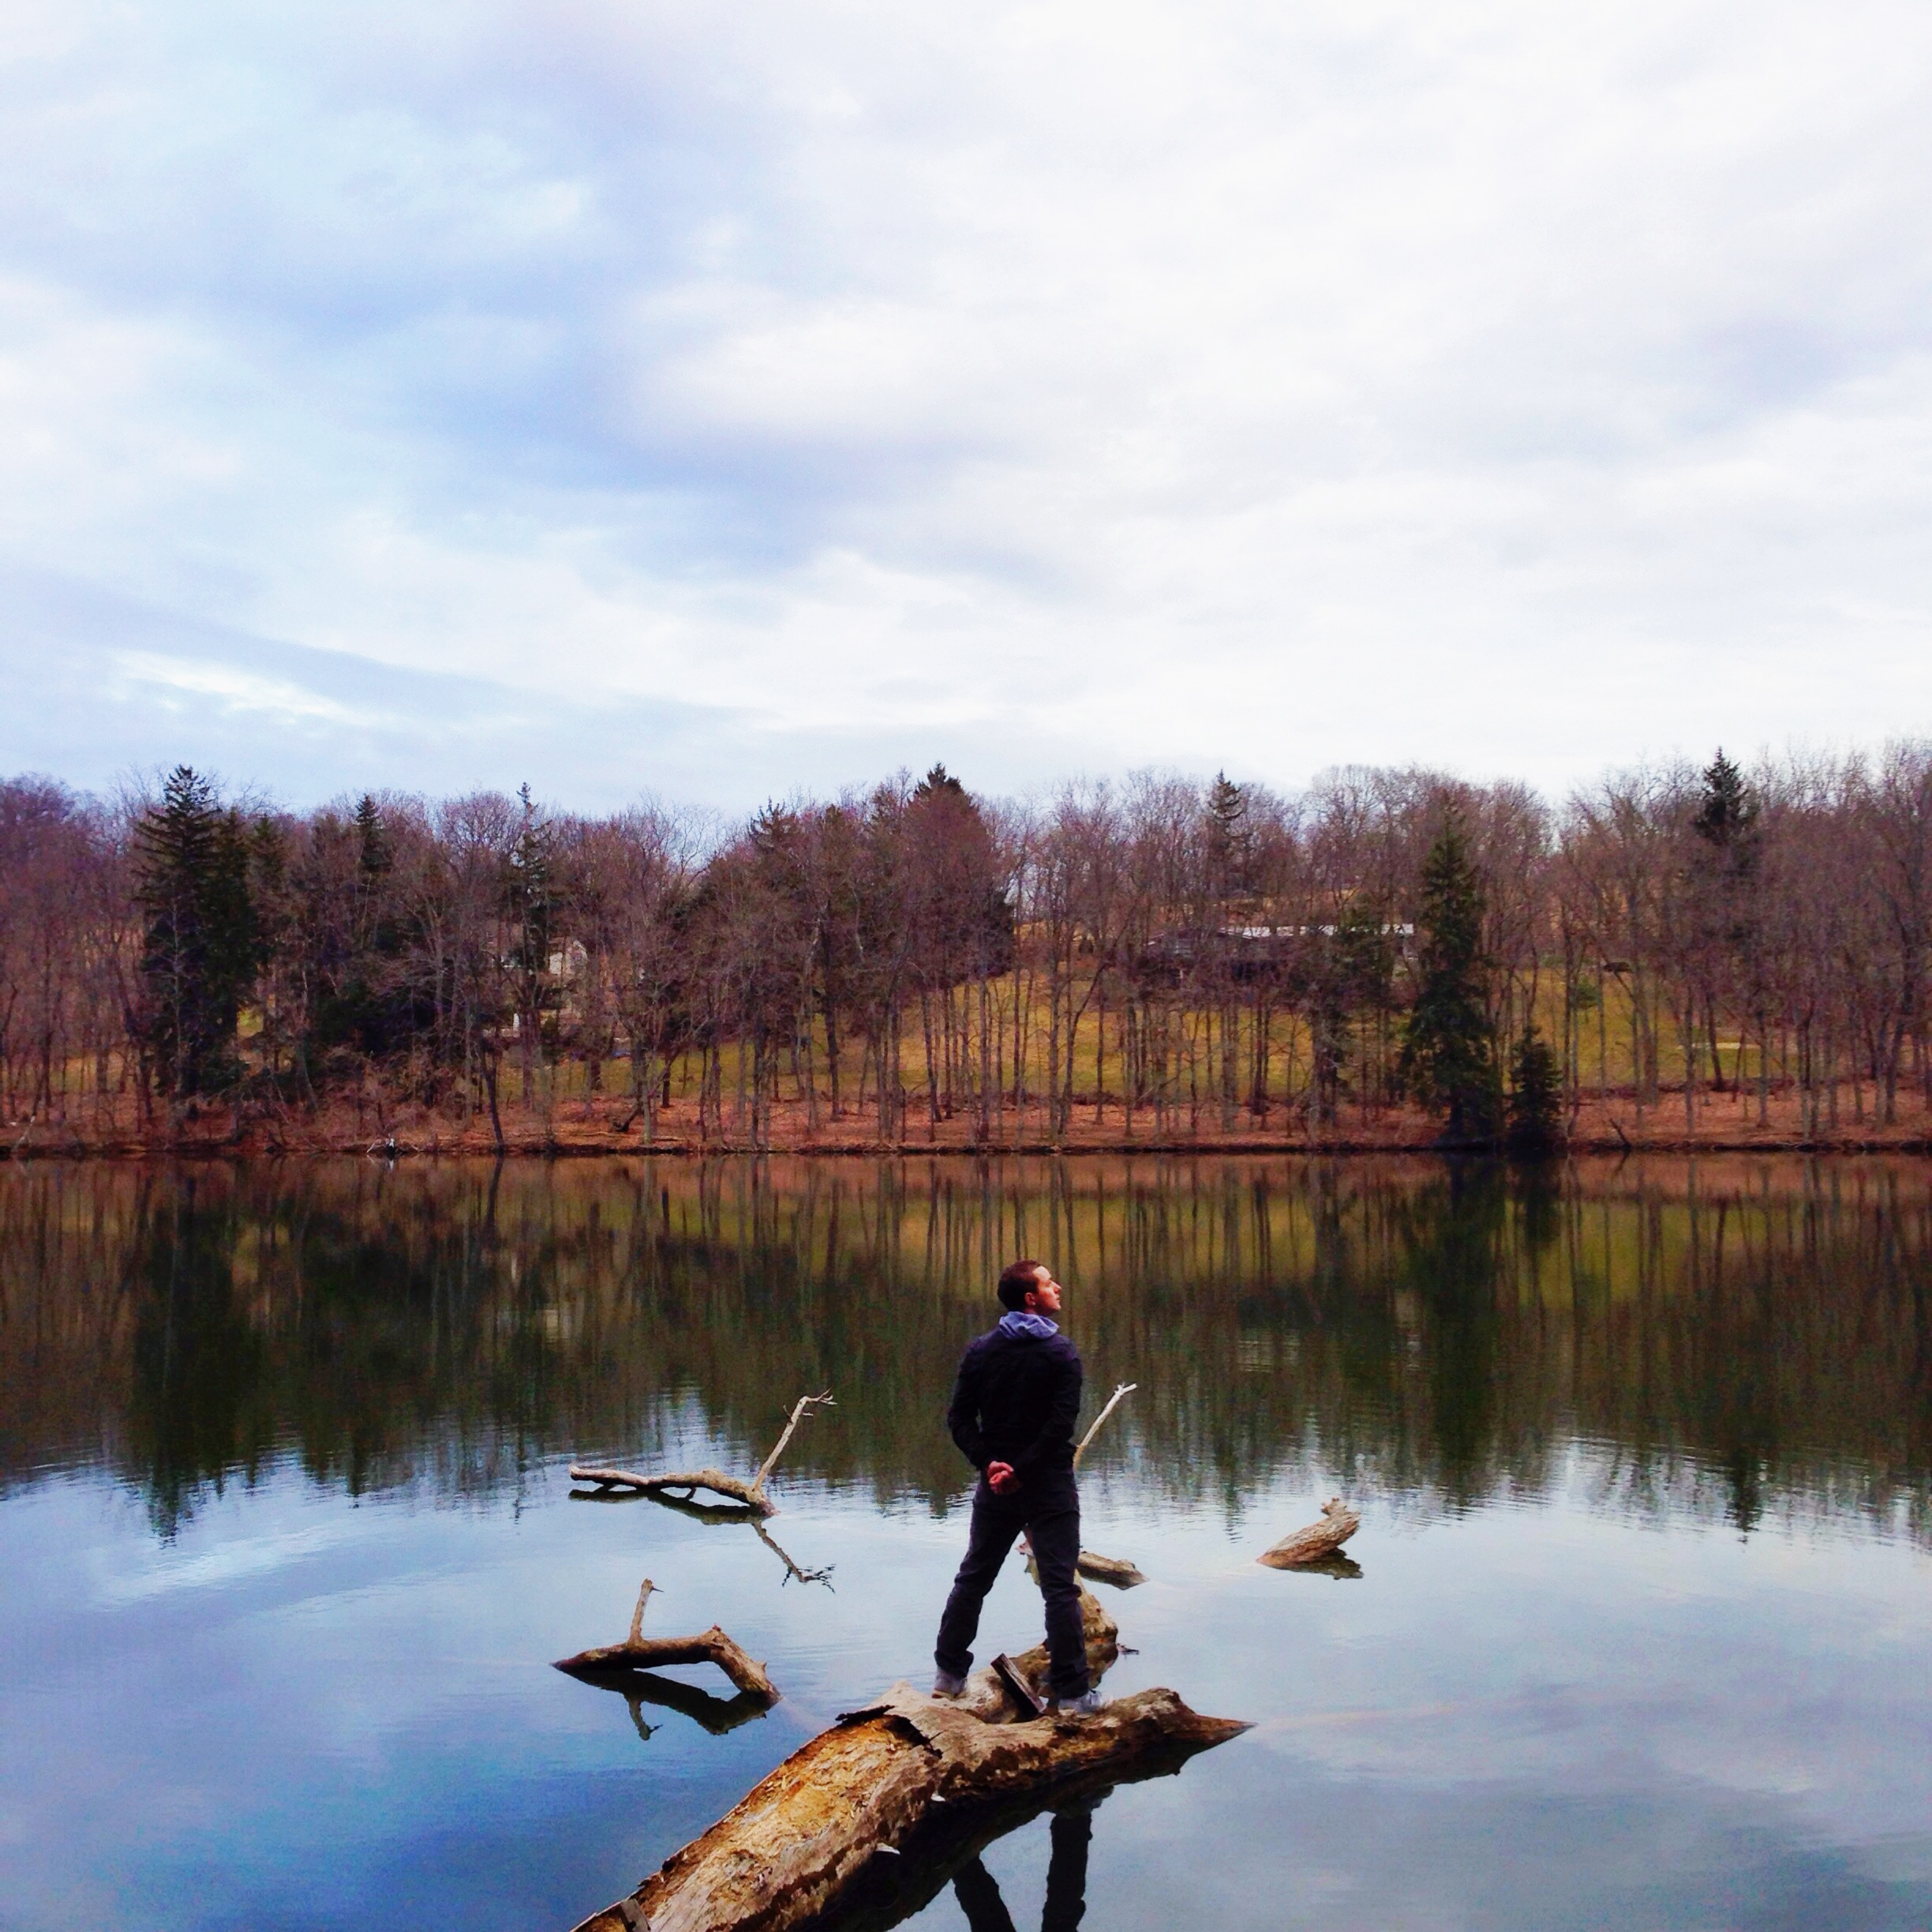 A #wicked_reflection featuring the creator of the hashtag himself, this time at Peters Lake Park